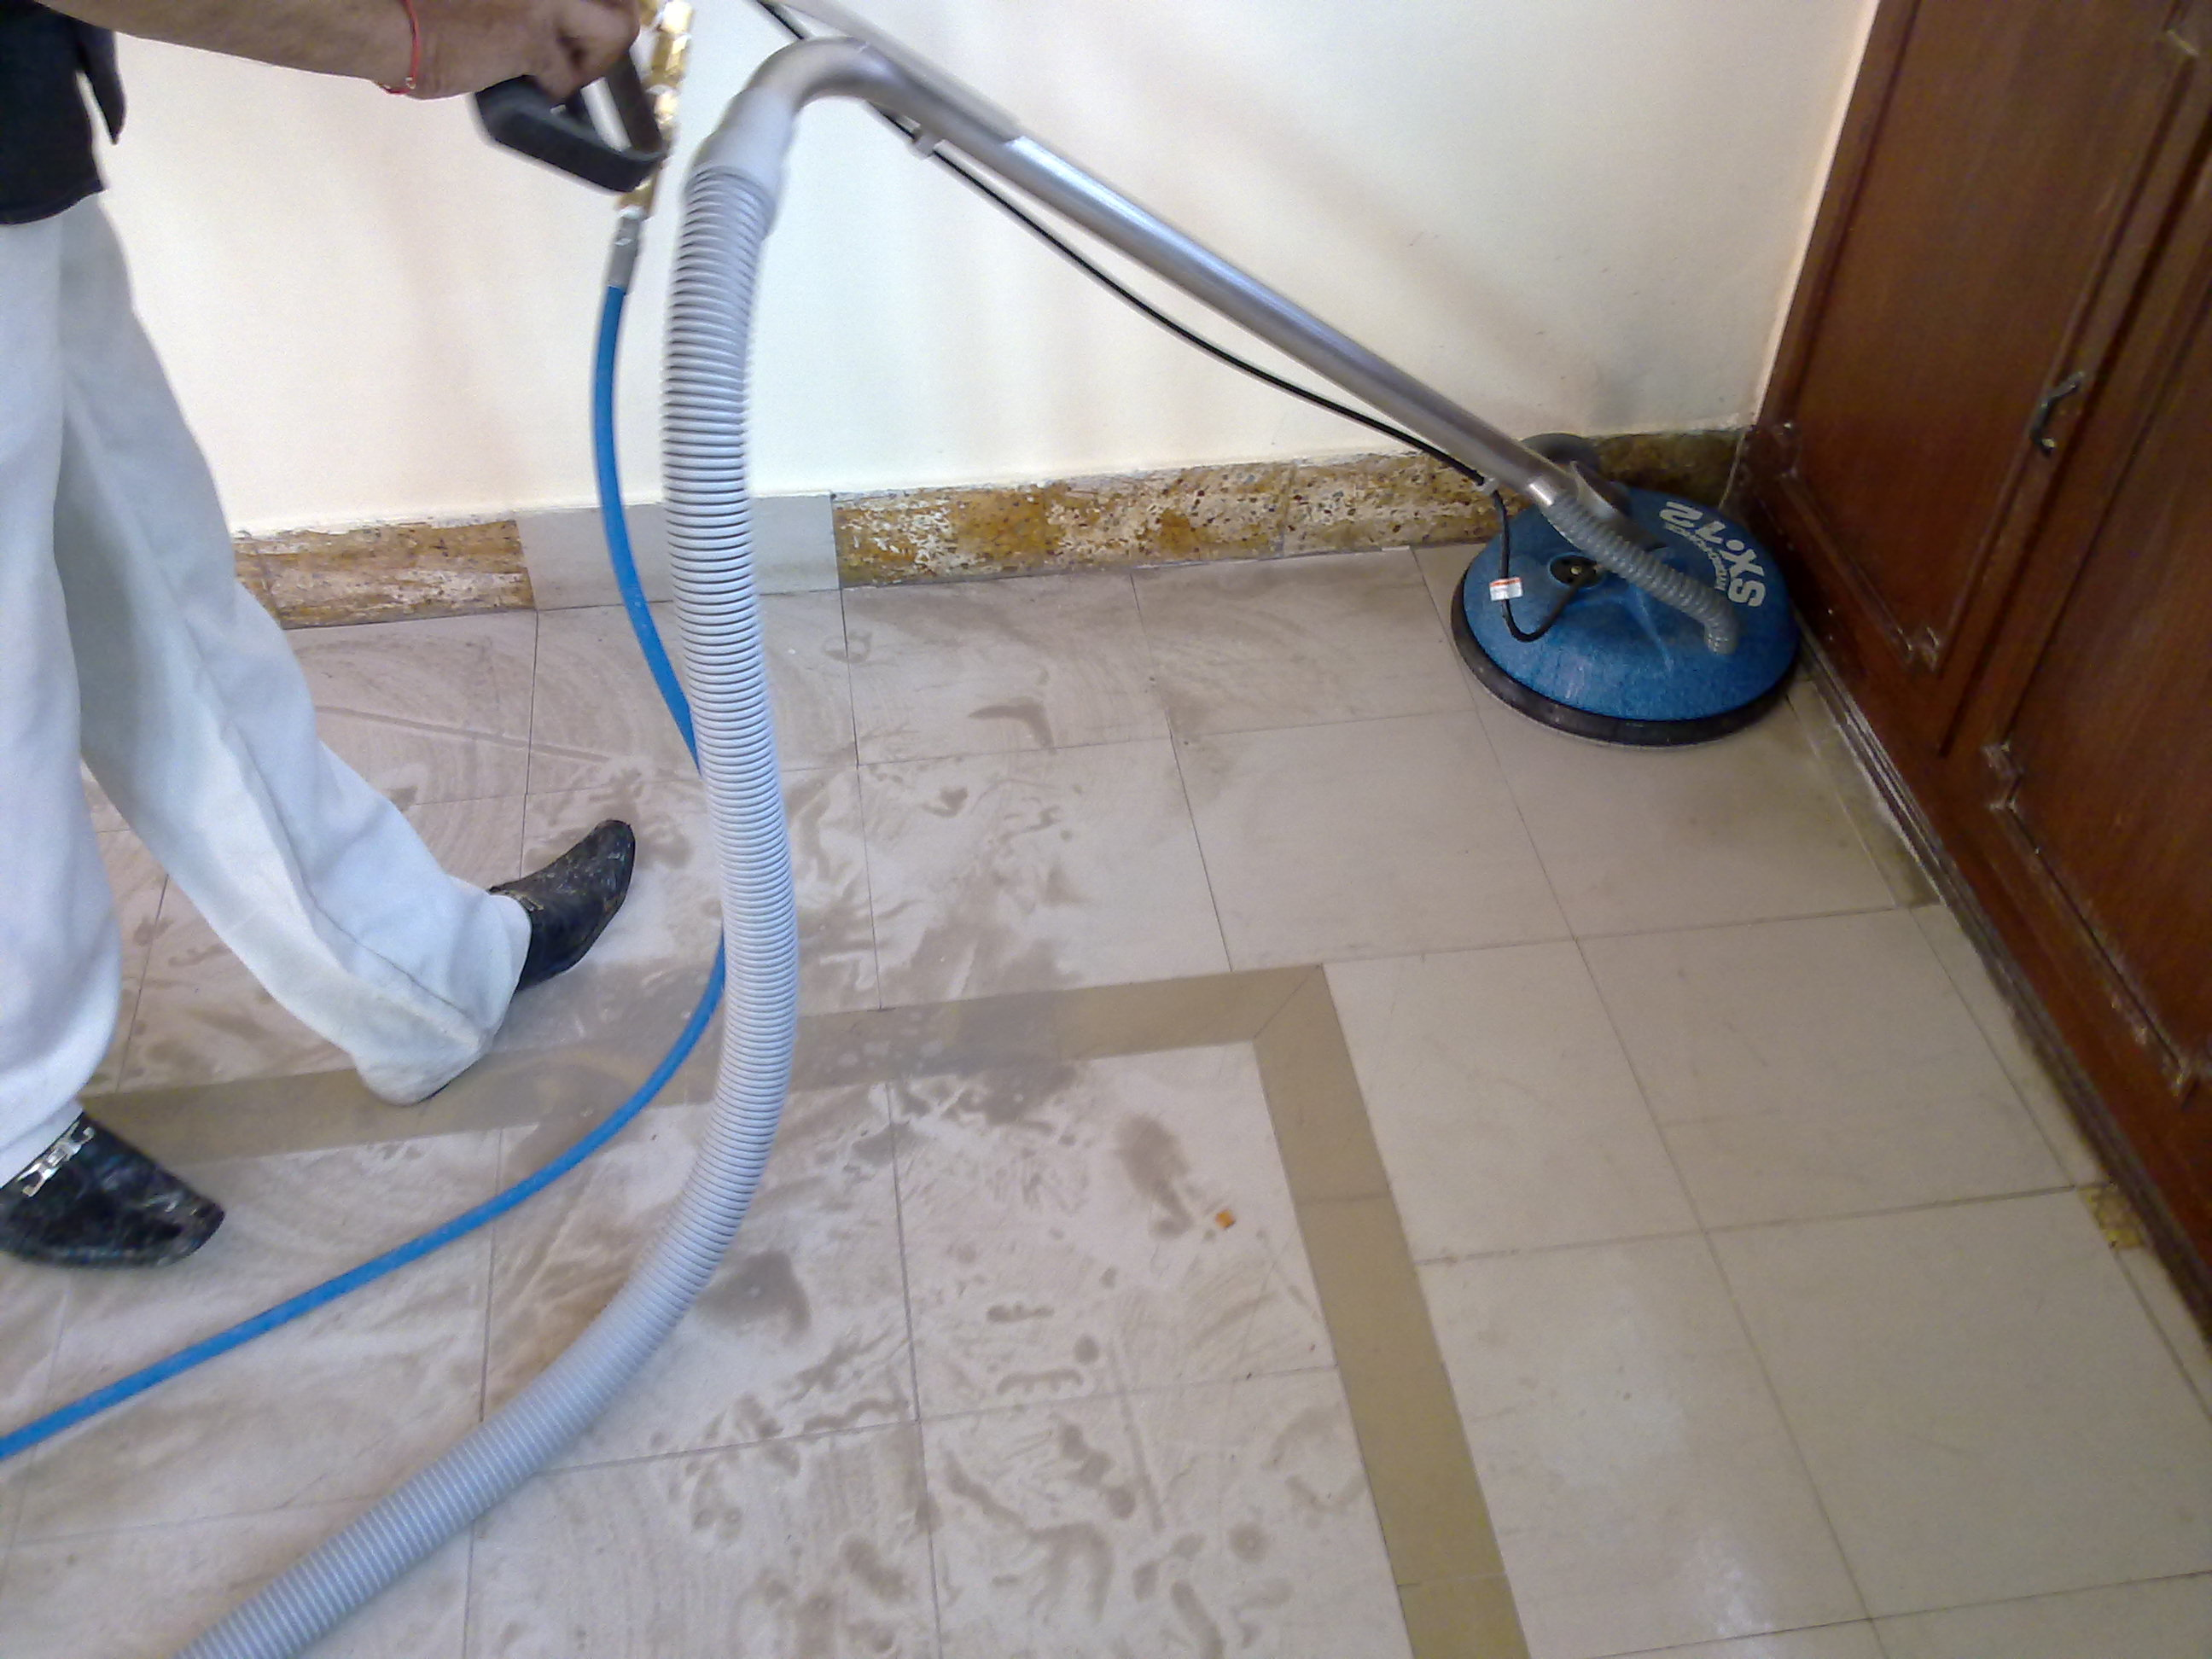 Tile Grout Cleaning Vs Marble Restore